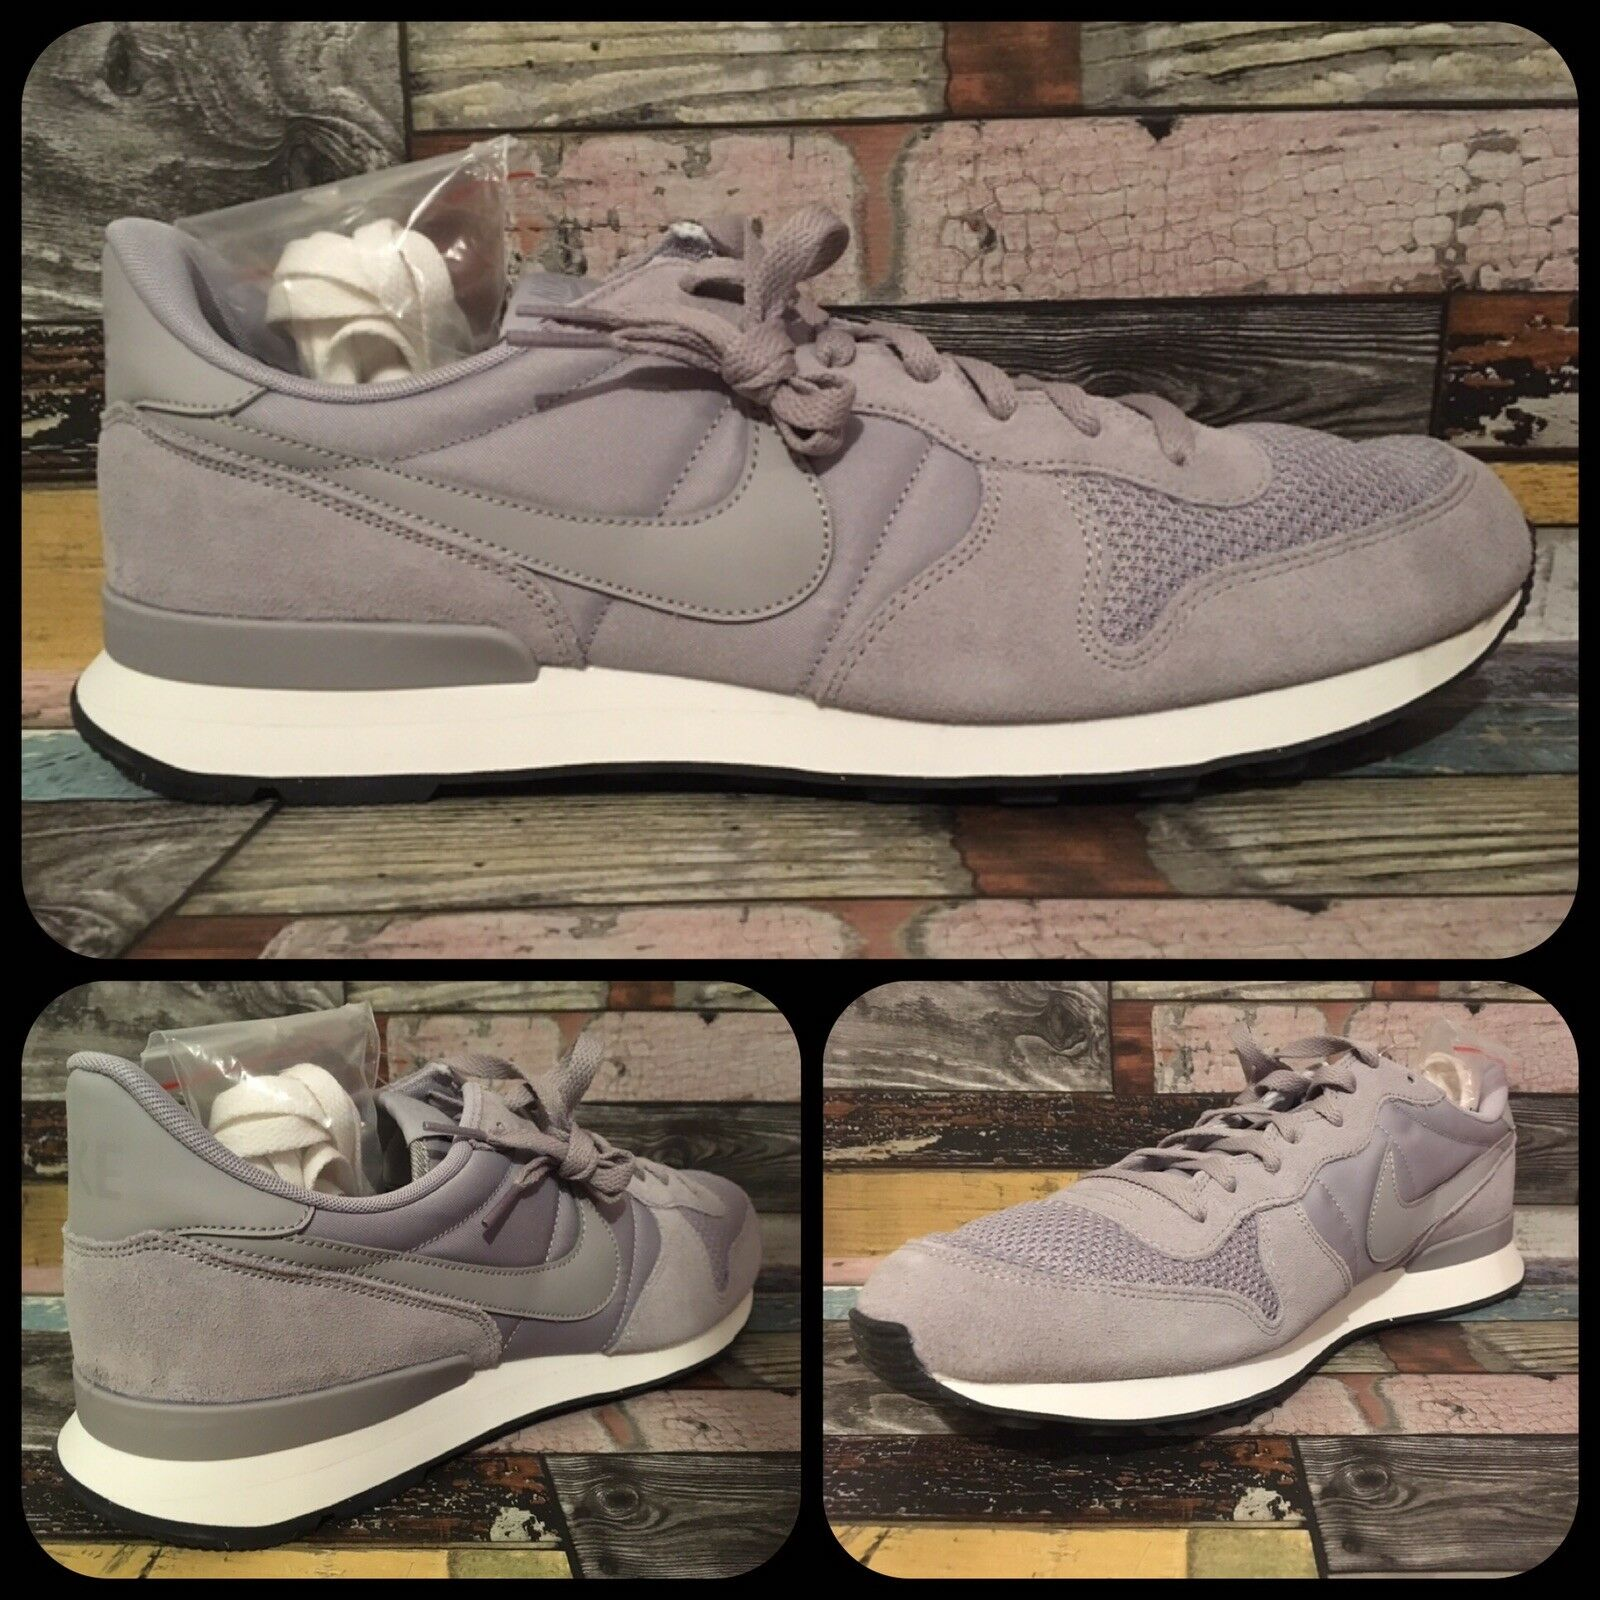 Nike Internationalist SE   UK 13 EU 48.5 US 14   AJ2024-001 Wolf grau Weiß